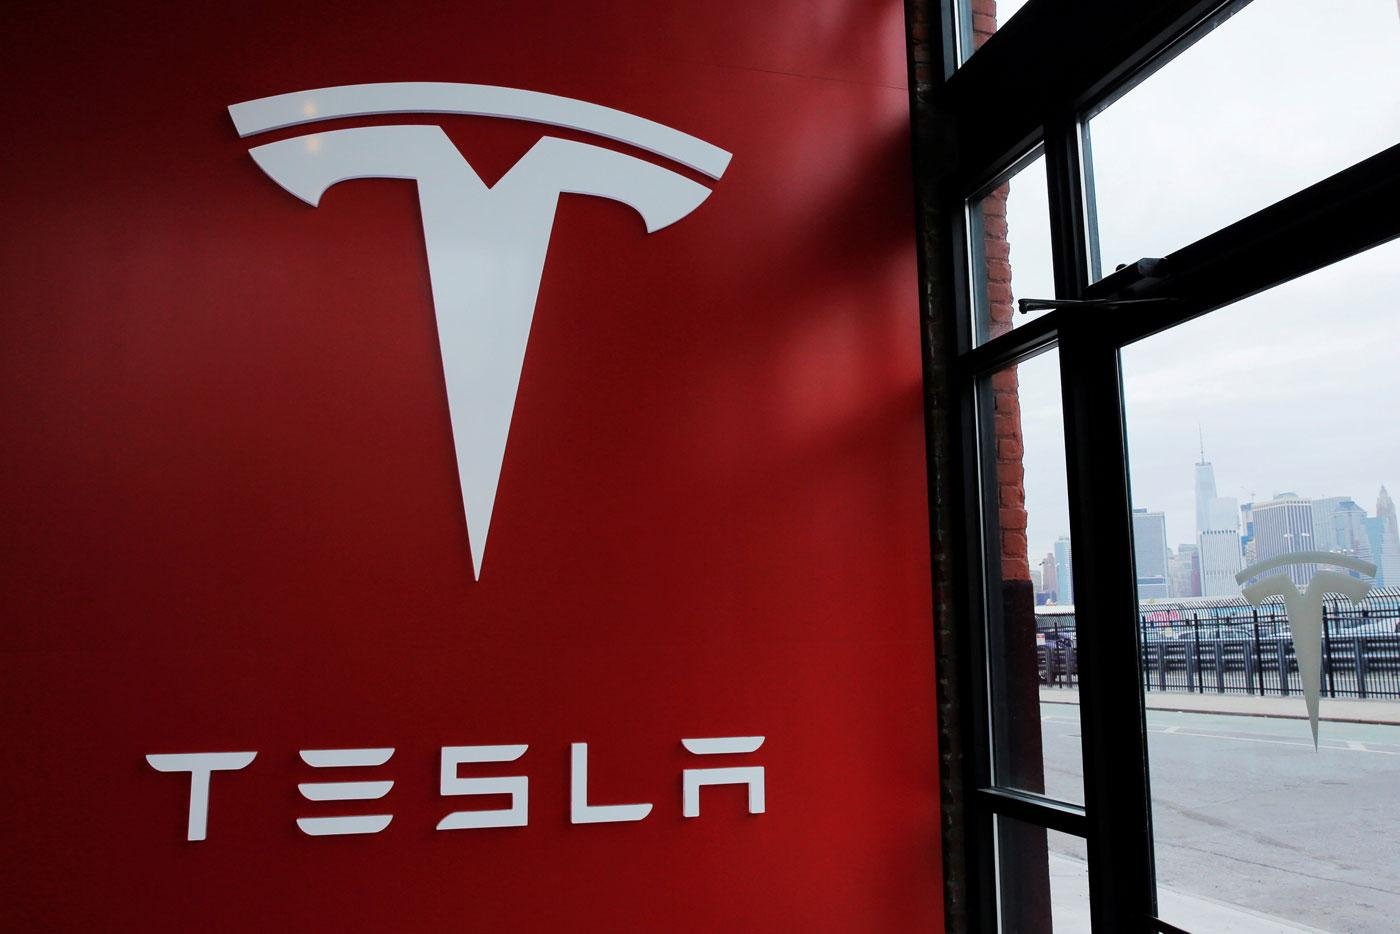 Tesla stock shock tsla soars after better than expected earnings buycottarizona Gallery